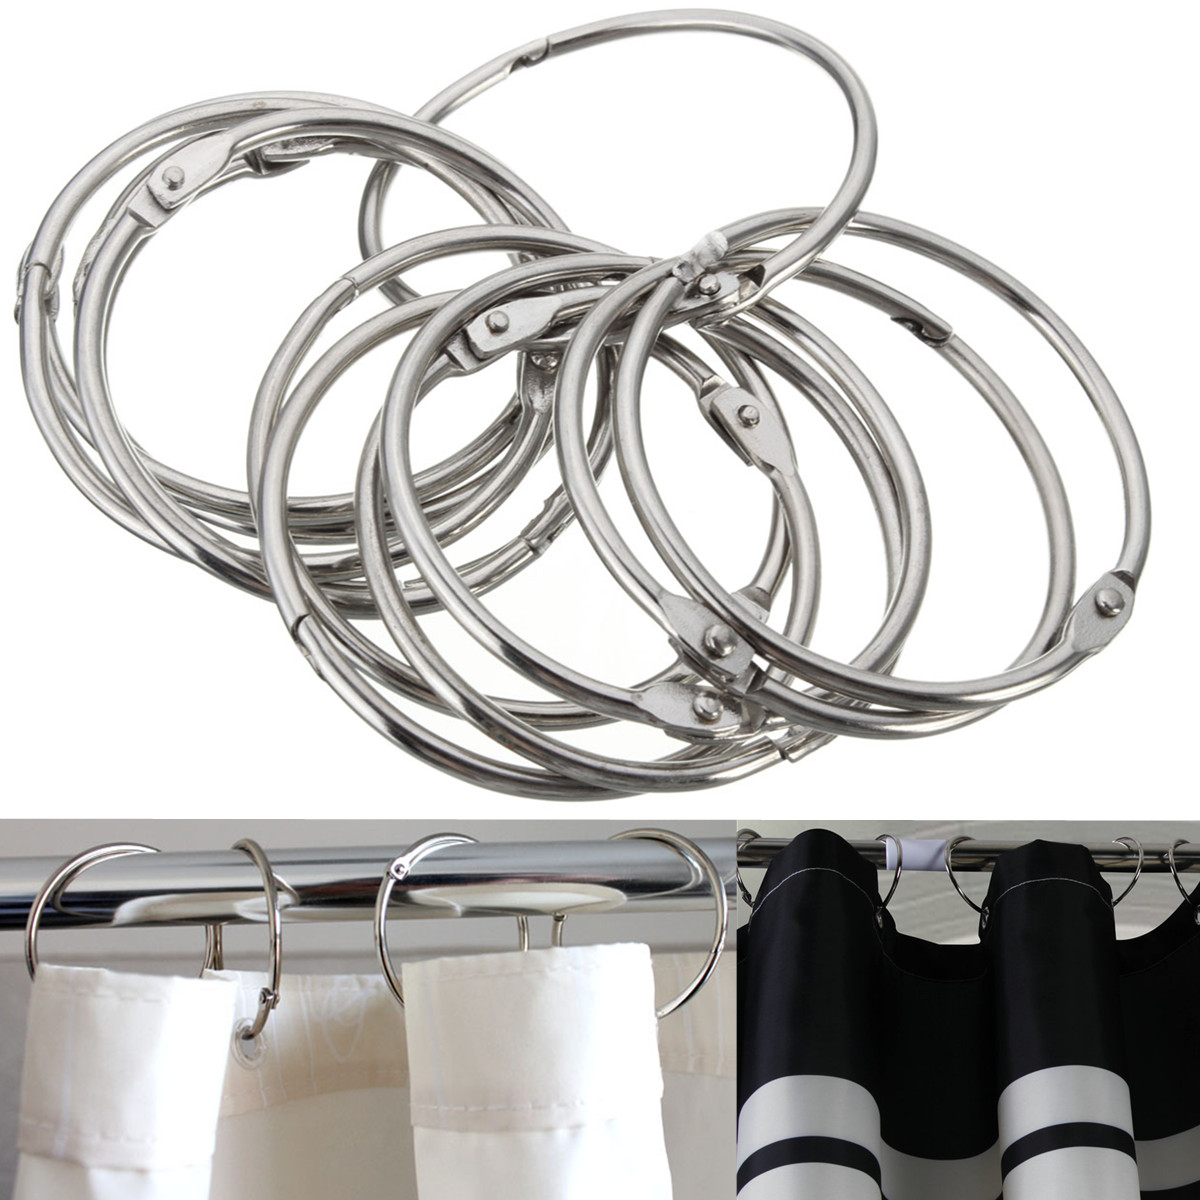 2019 5cm Round Circular Shower Curtain Hooks Rings Anti Rust Silver Hinges Closure Mechanism Stainless Steel Durable Slideable From Cocosoly Tools